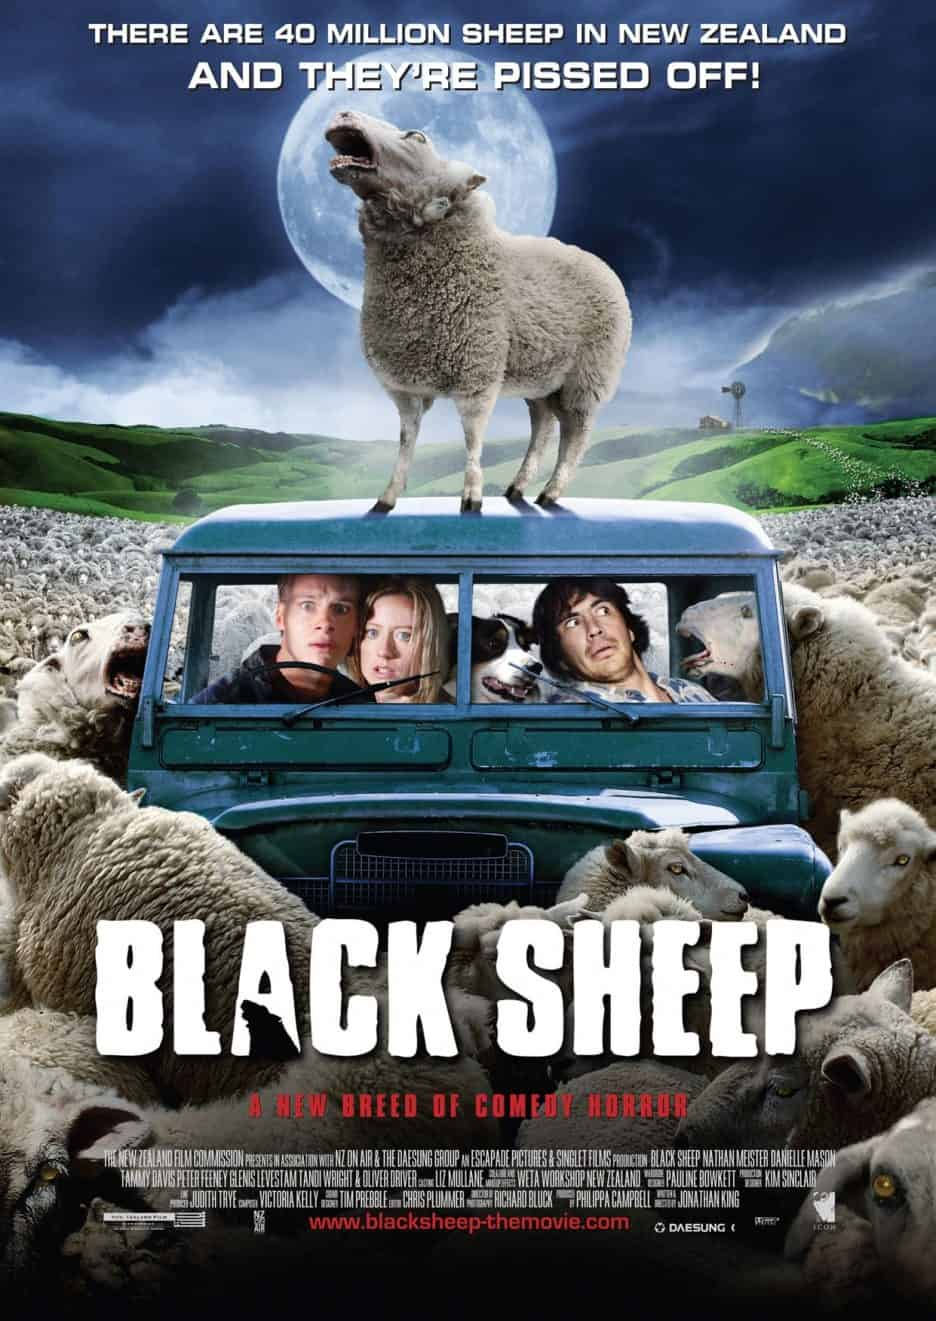 Horror Movie Review: Black Sheep (2006)